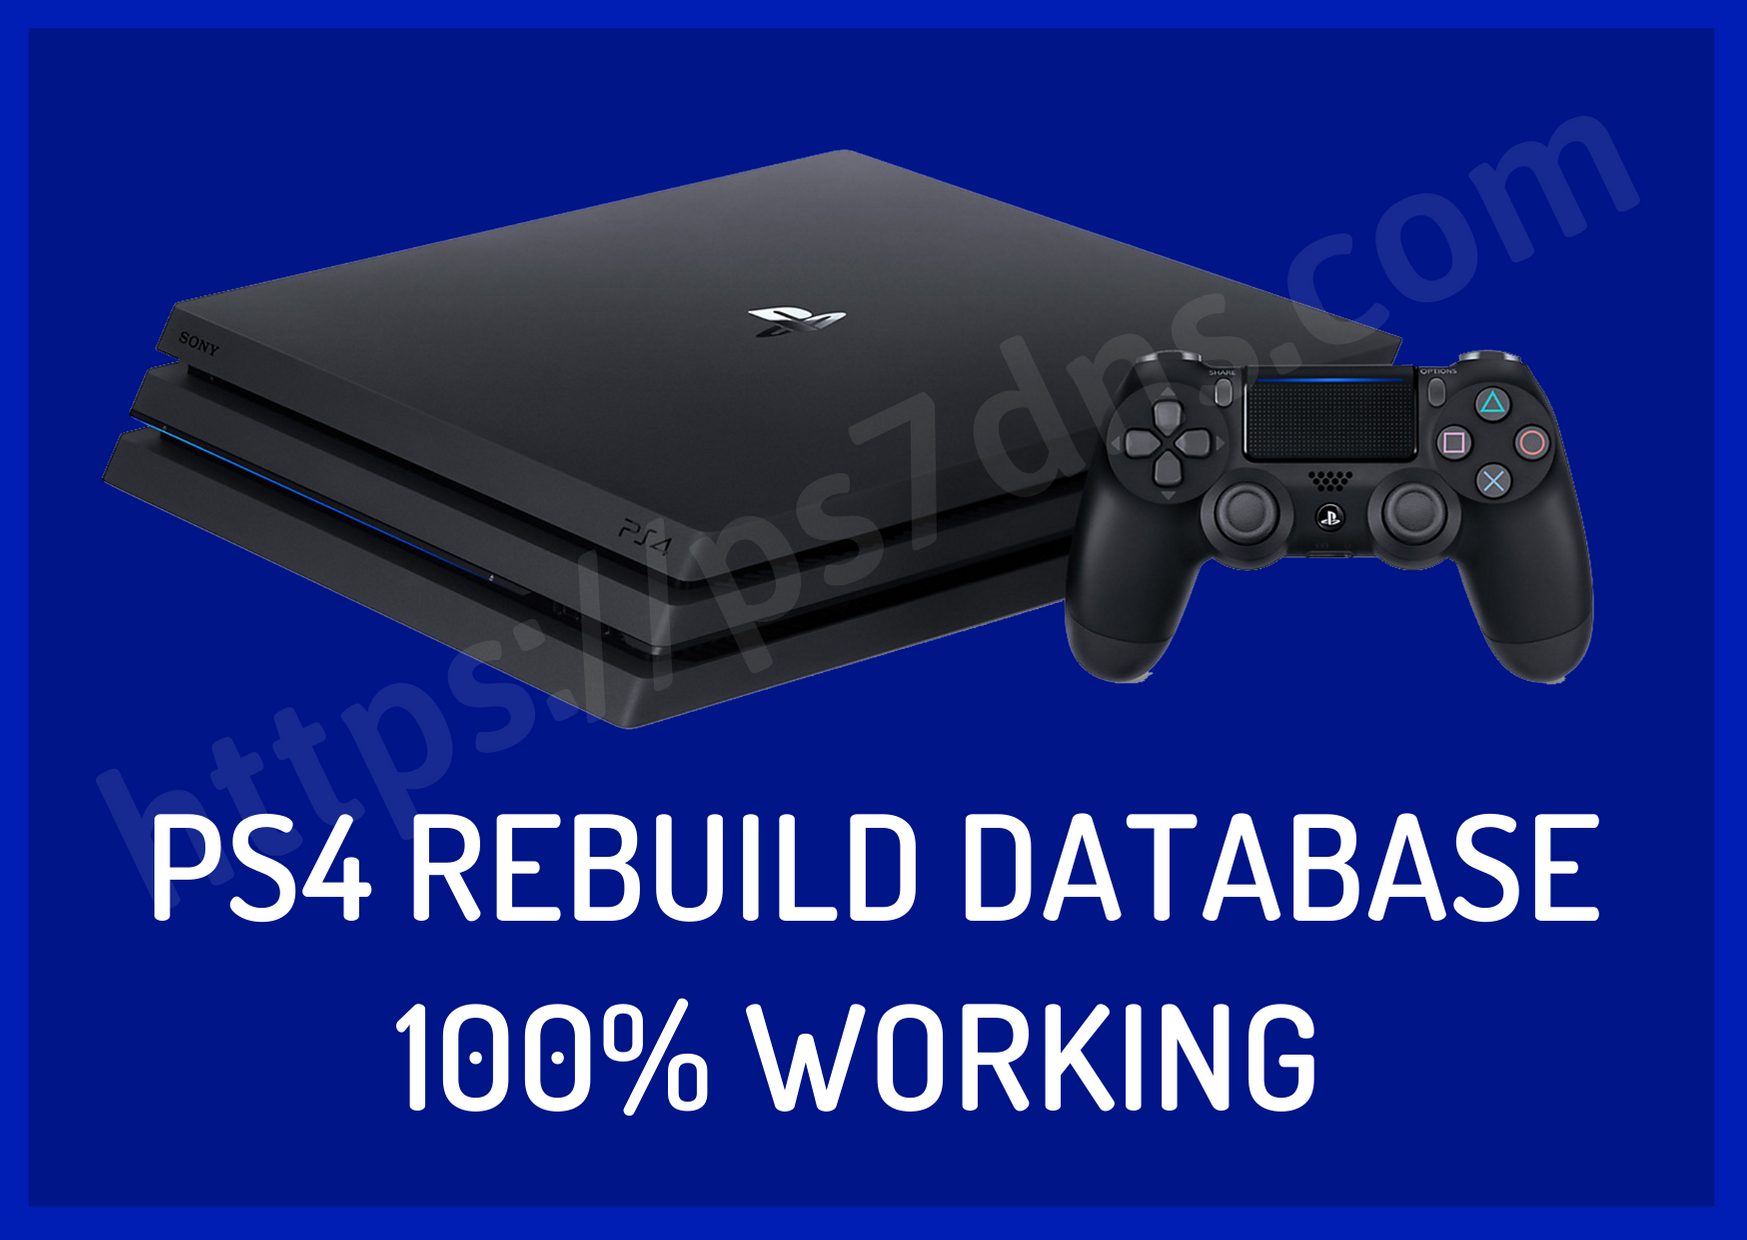 PS4 Rebuild Database 100% Working